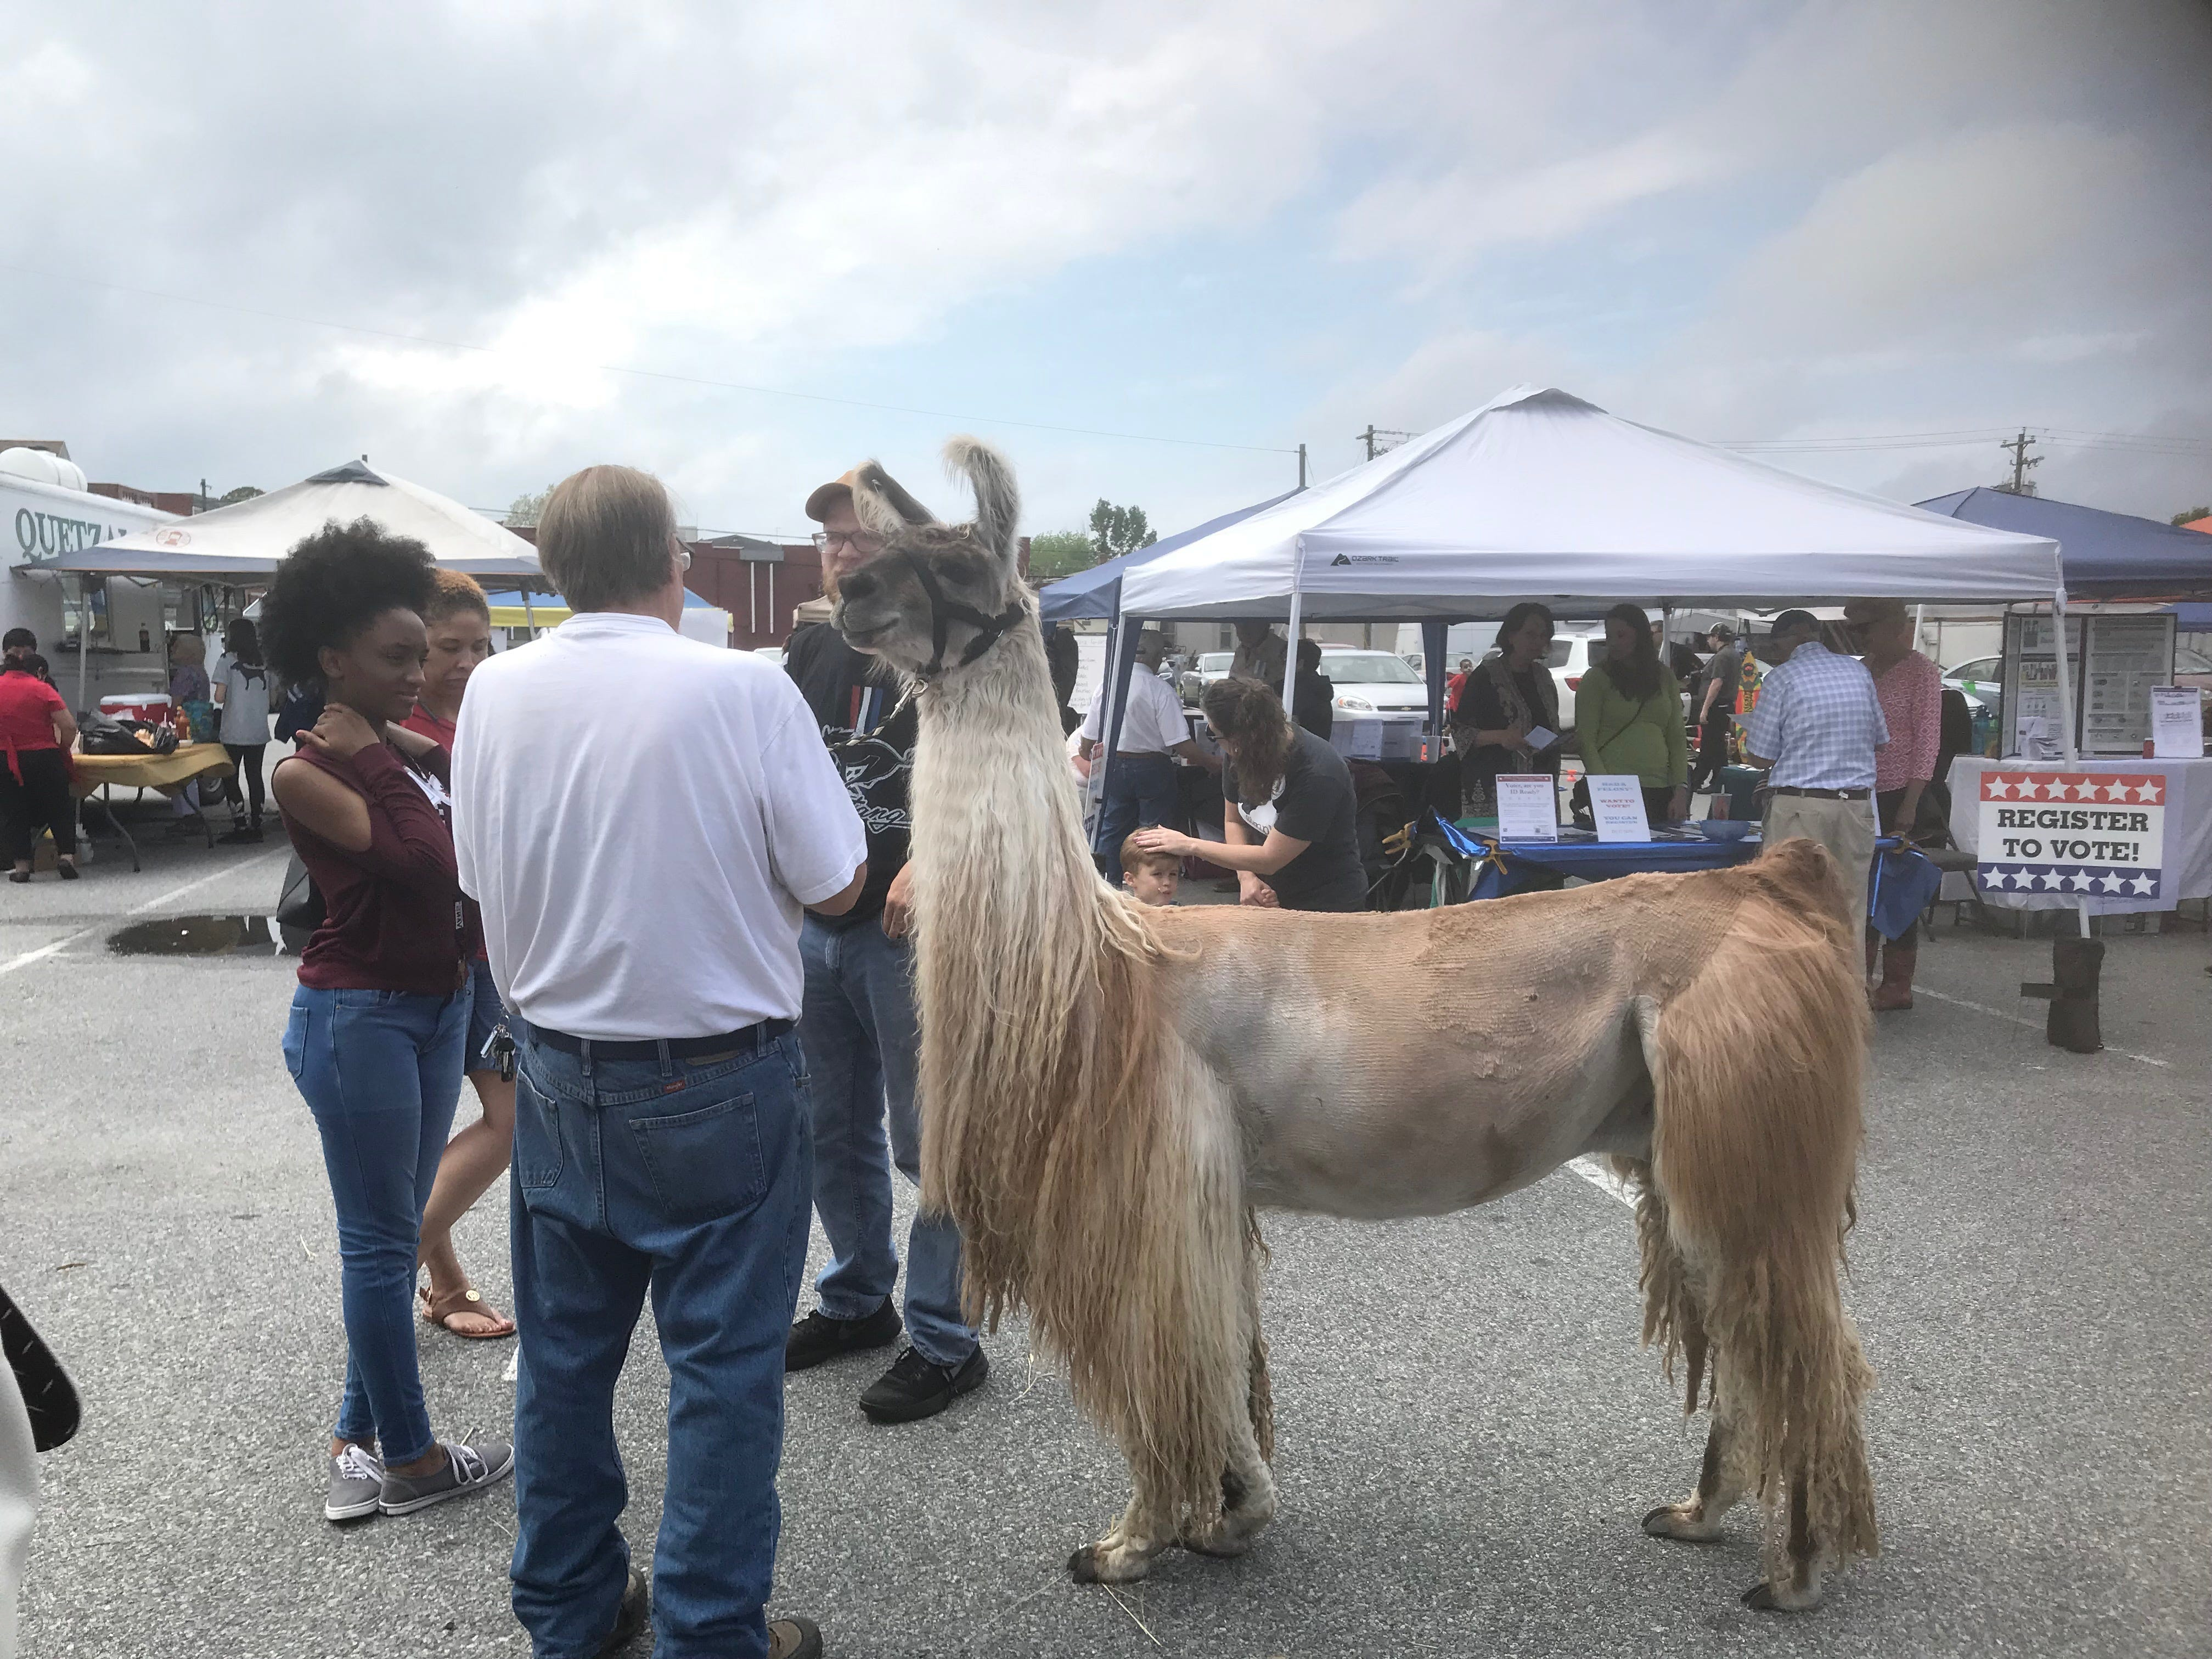 The Eastern Shore Public Library held a multicultural festival at the site of the new library in Parksley, Virginia on Sunday, May 5, 2019.